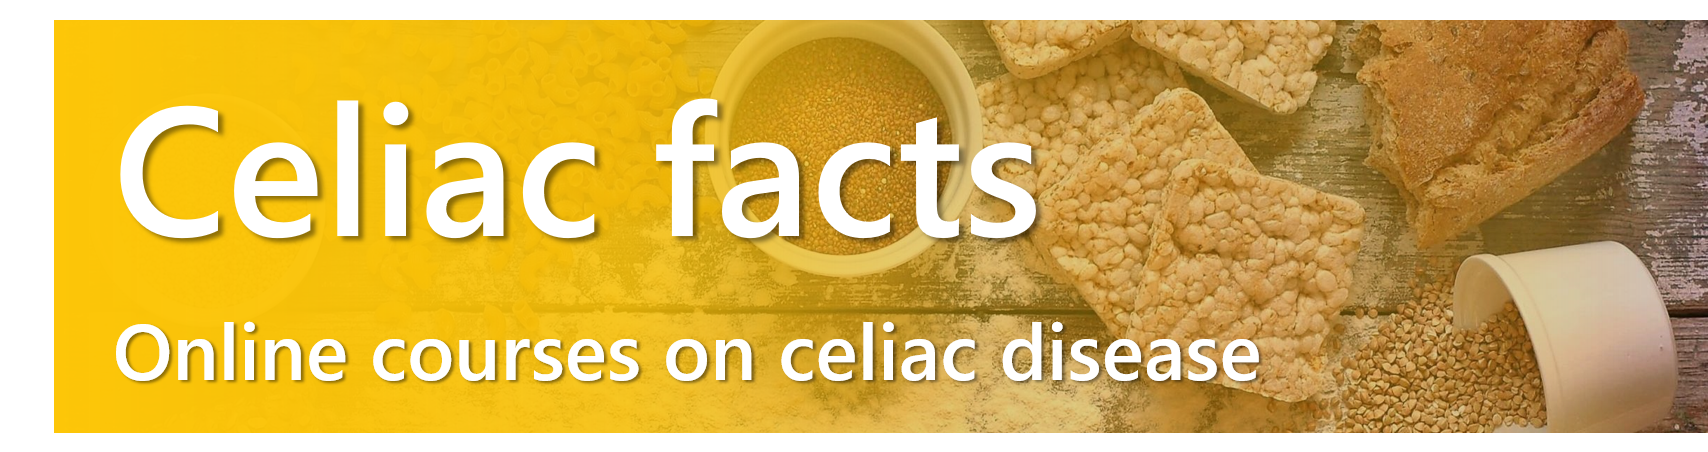 Celiac facts online courses on celiac disease